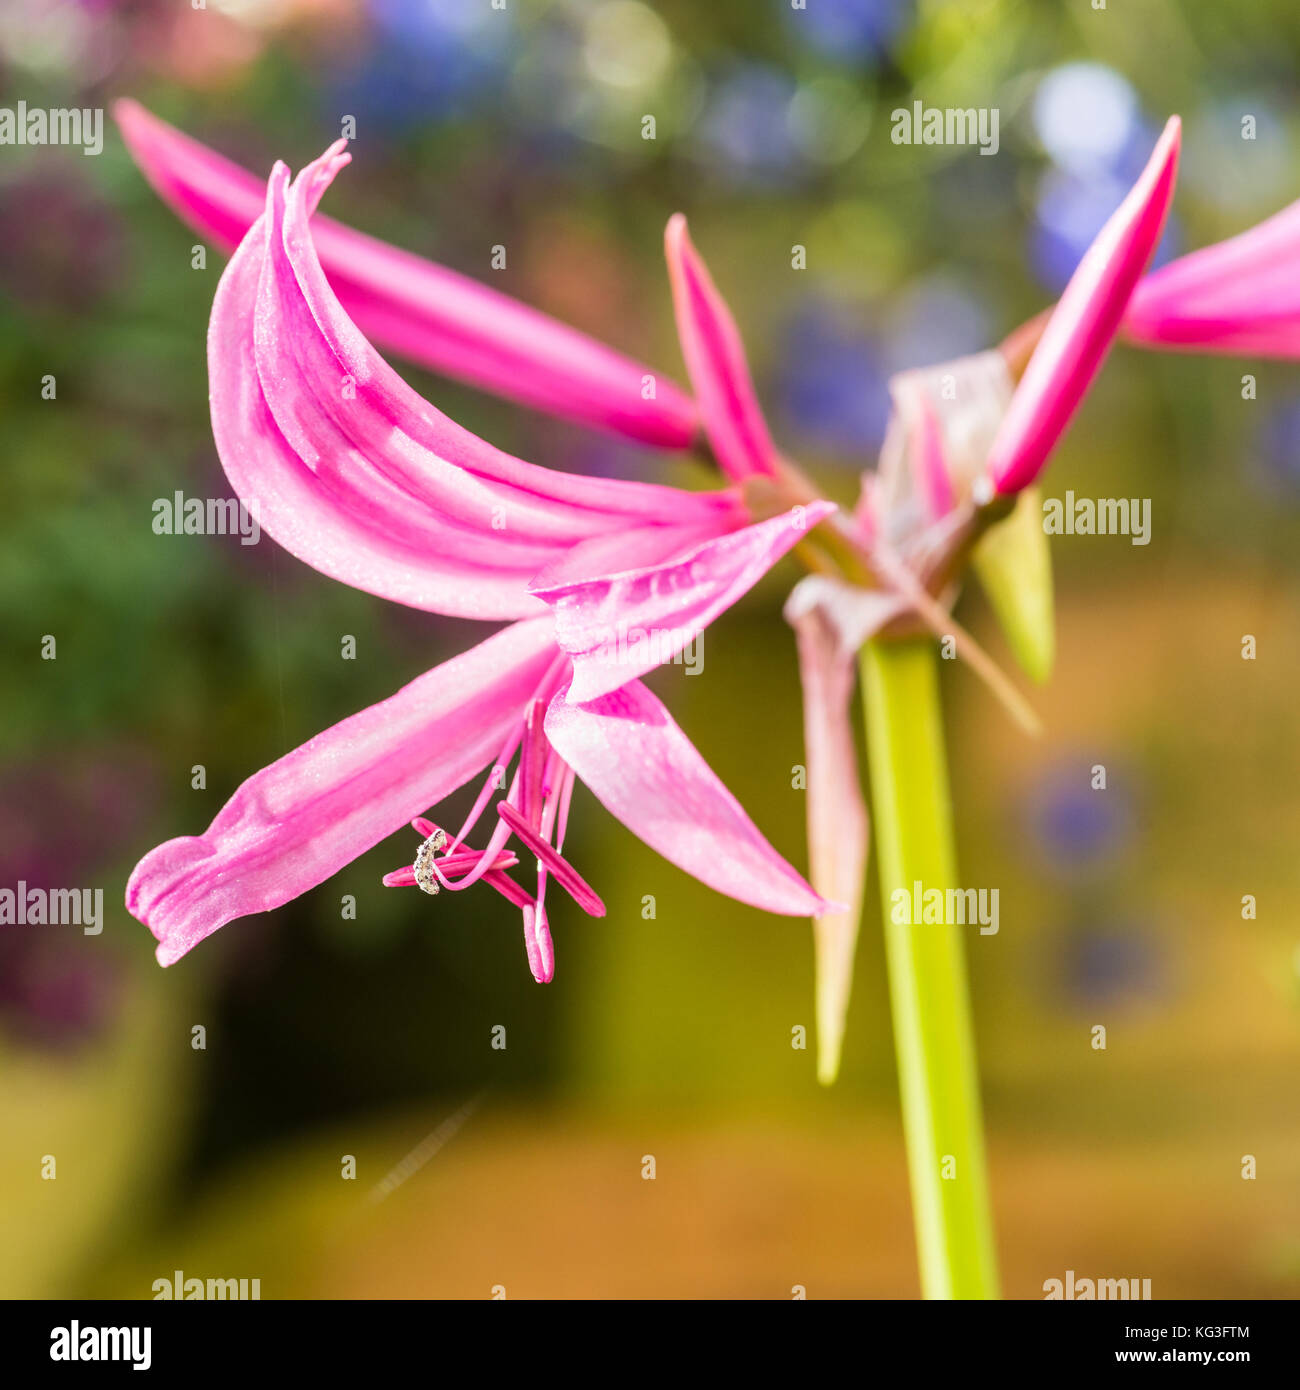 A macro shot of a pink nerine bowdenii bloom. - Stock Image